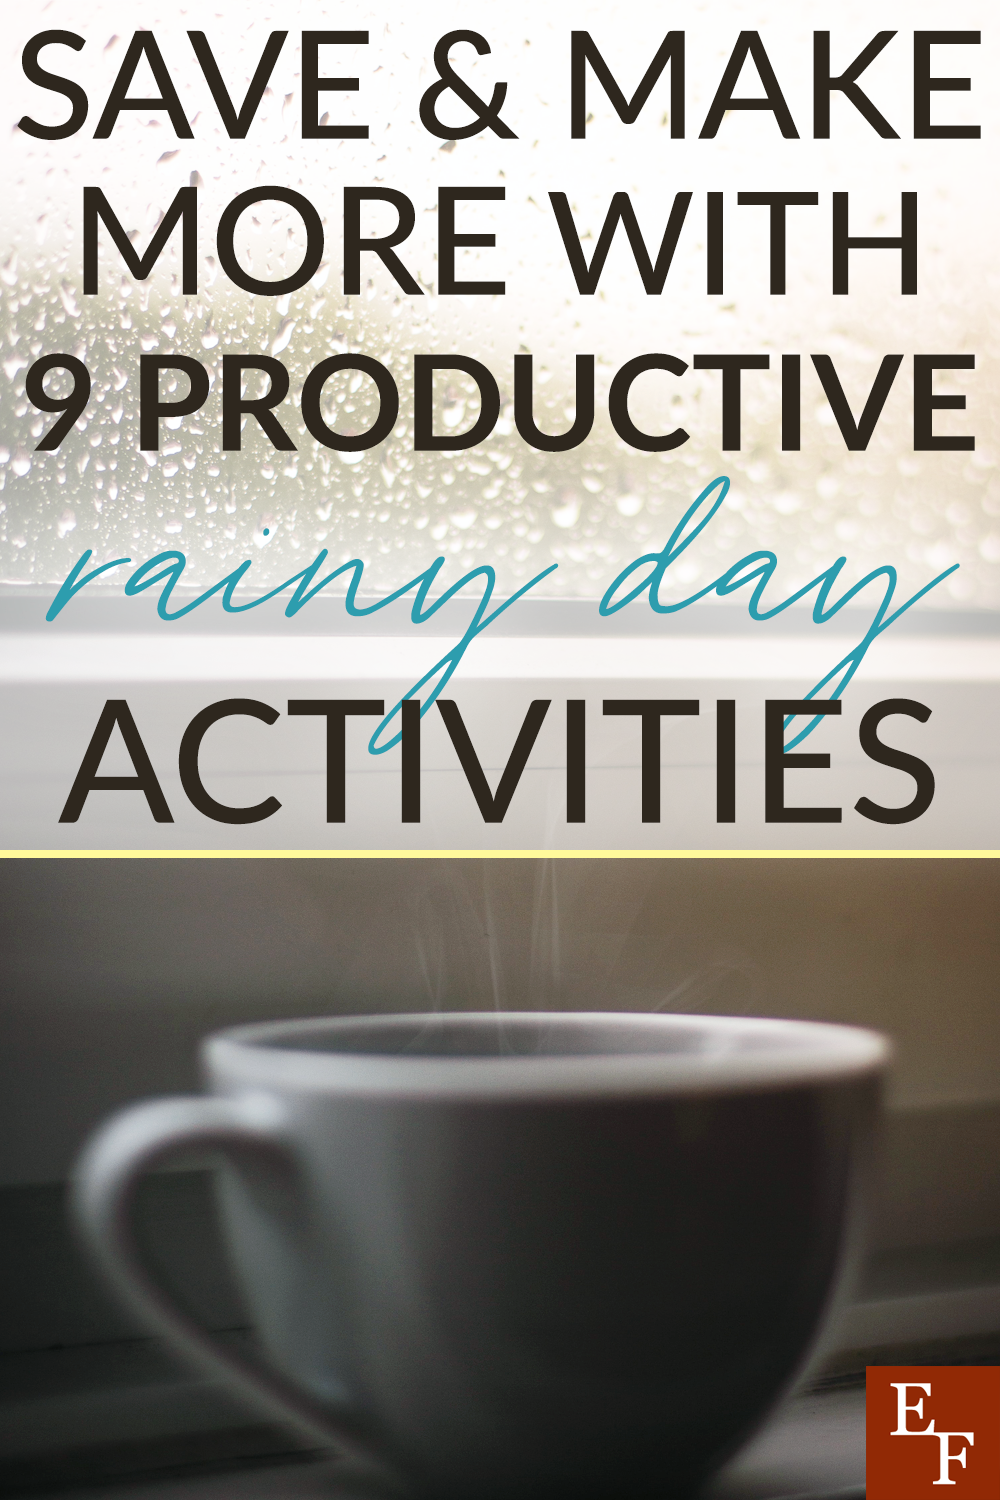 Just because it's a rainy day doesn't mean you can be productive. So here are 9 awesome productive rainy day activities to save and make more.